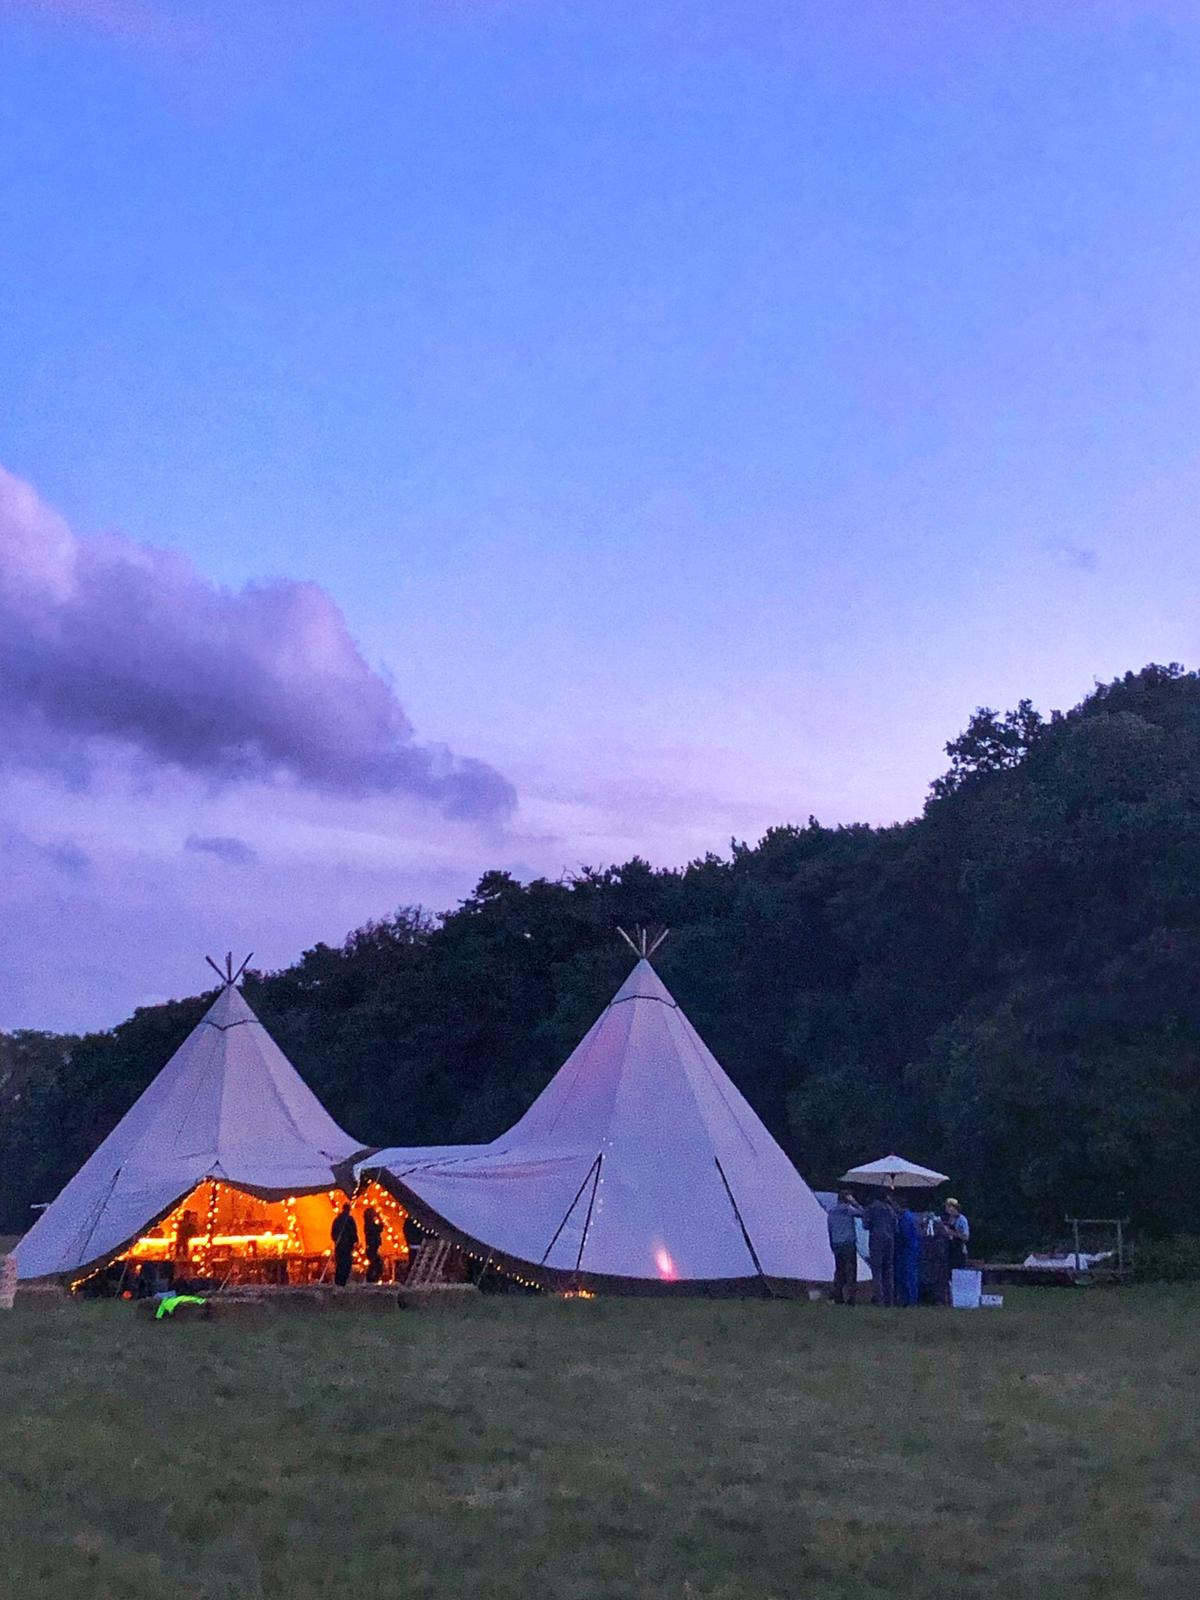 Two tipis at dusk, lit up from the inside